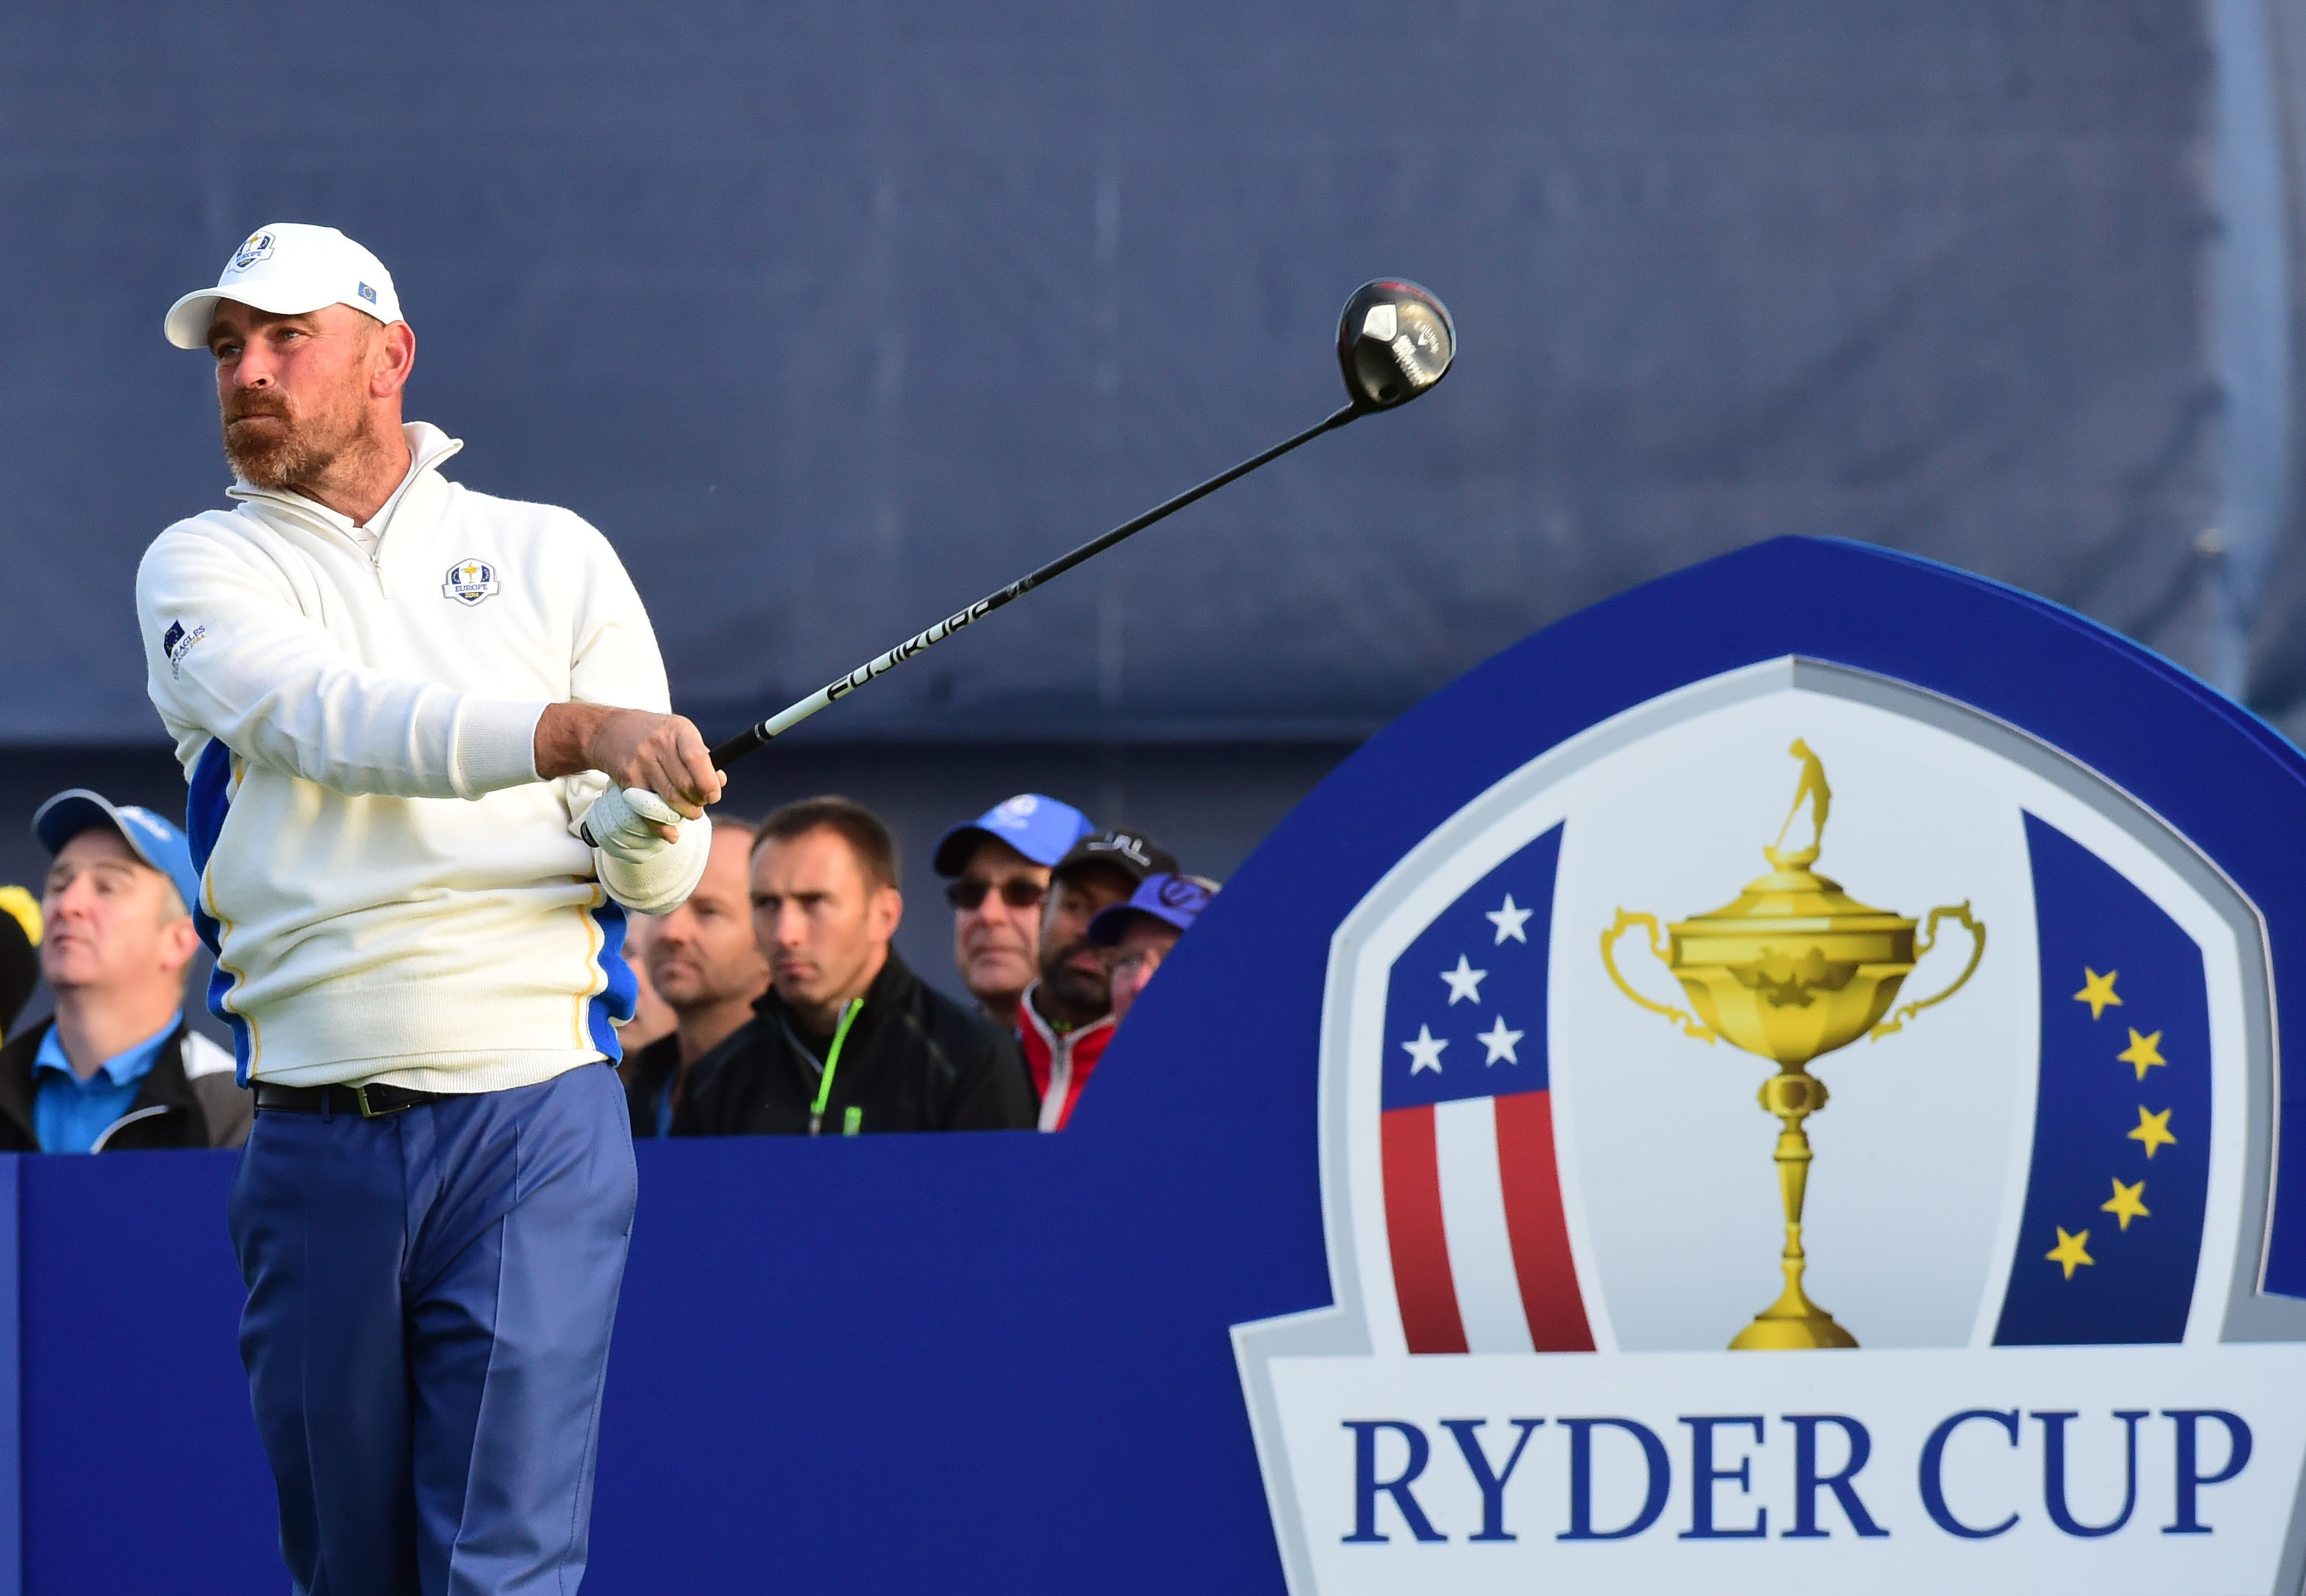 Denmark's Thomas Bjorn in Ryder Cup action as a player.